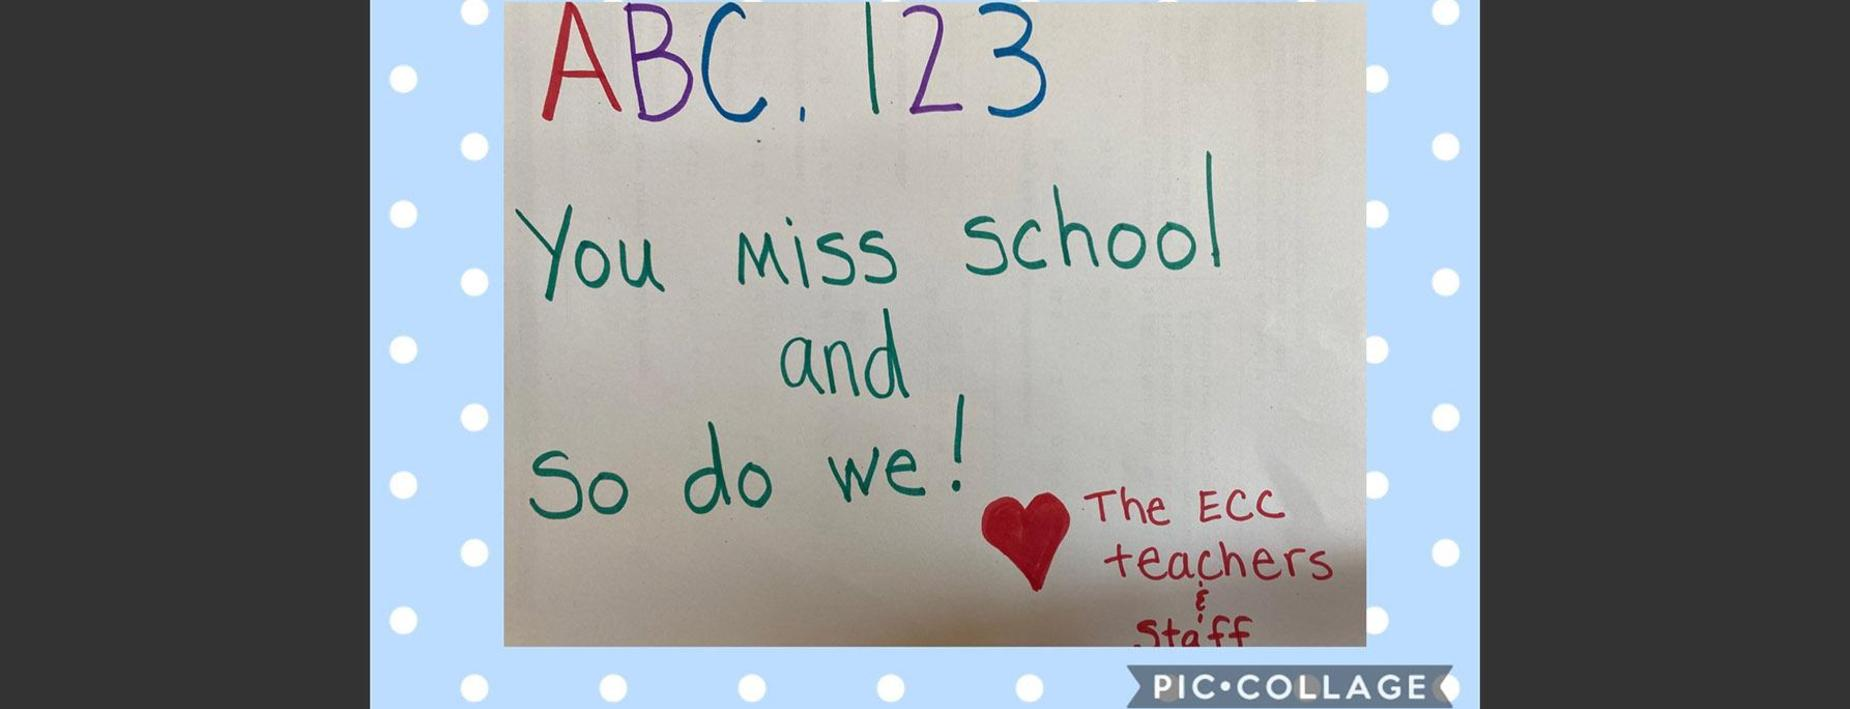 We all miss school and miss you!